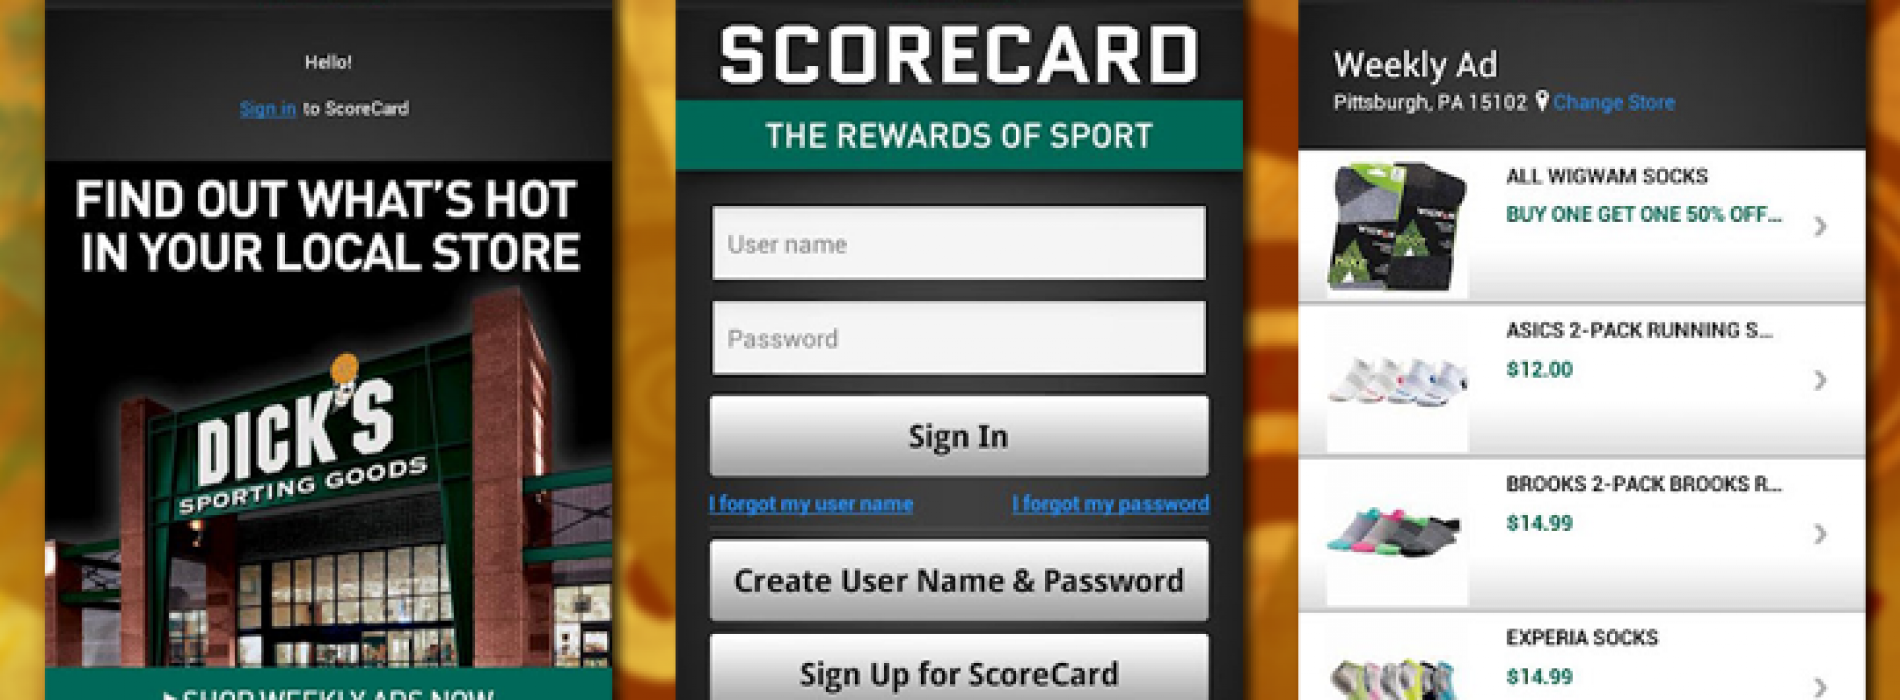 Dick's Sporting Goods debuts official Android app